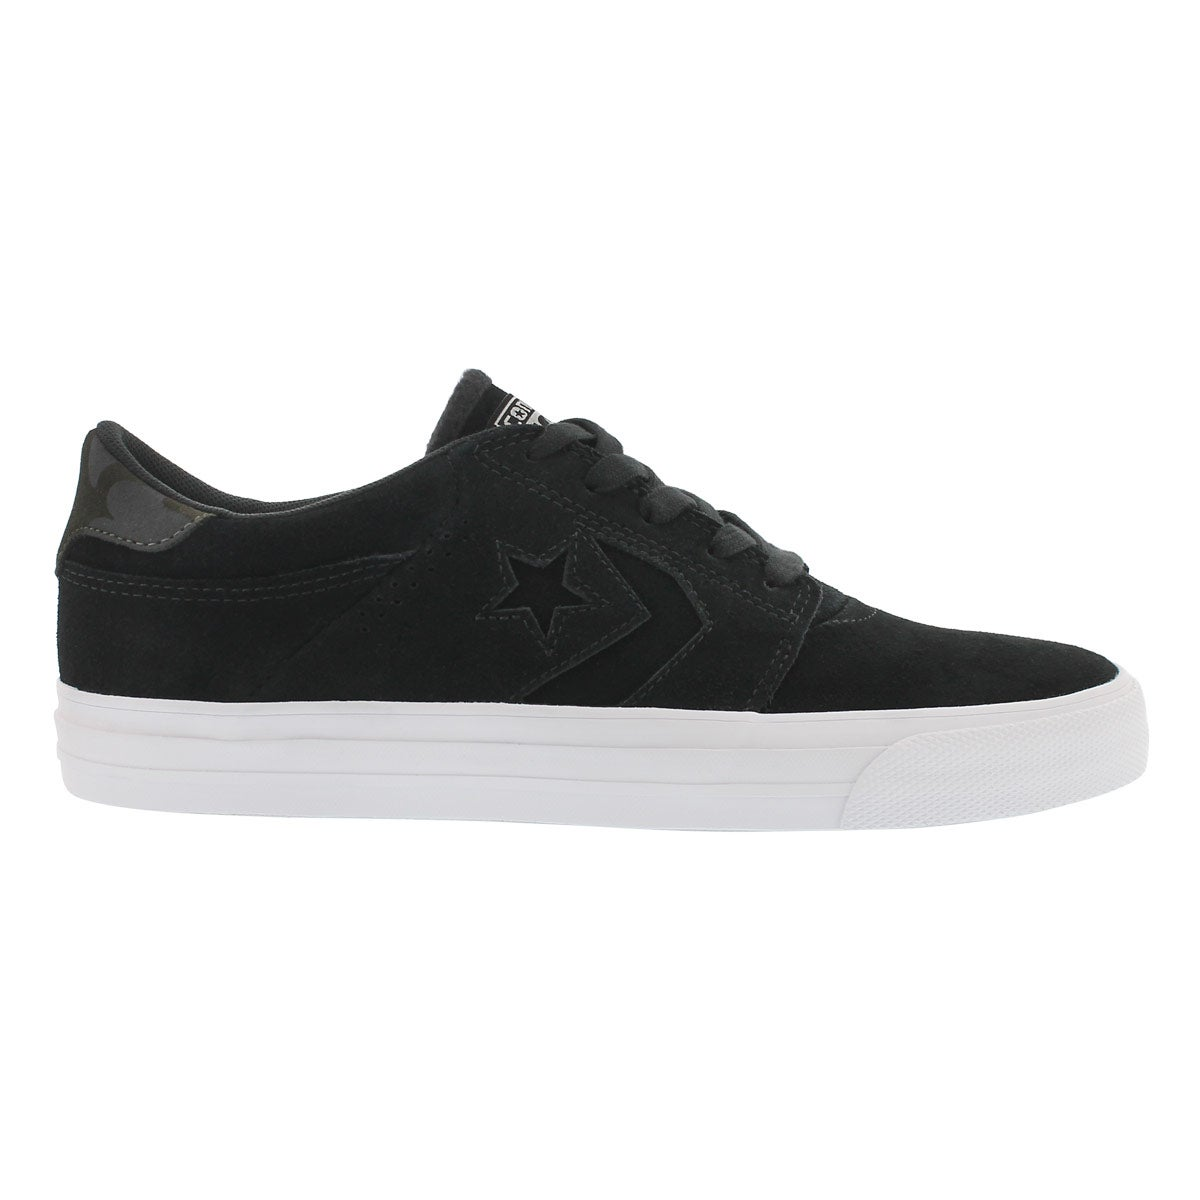 Mns CT A/S Tre Star black sneaker